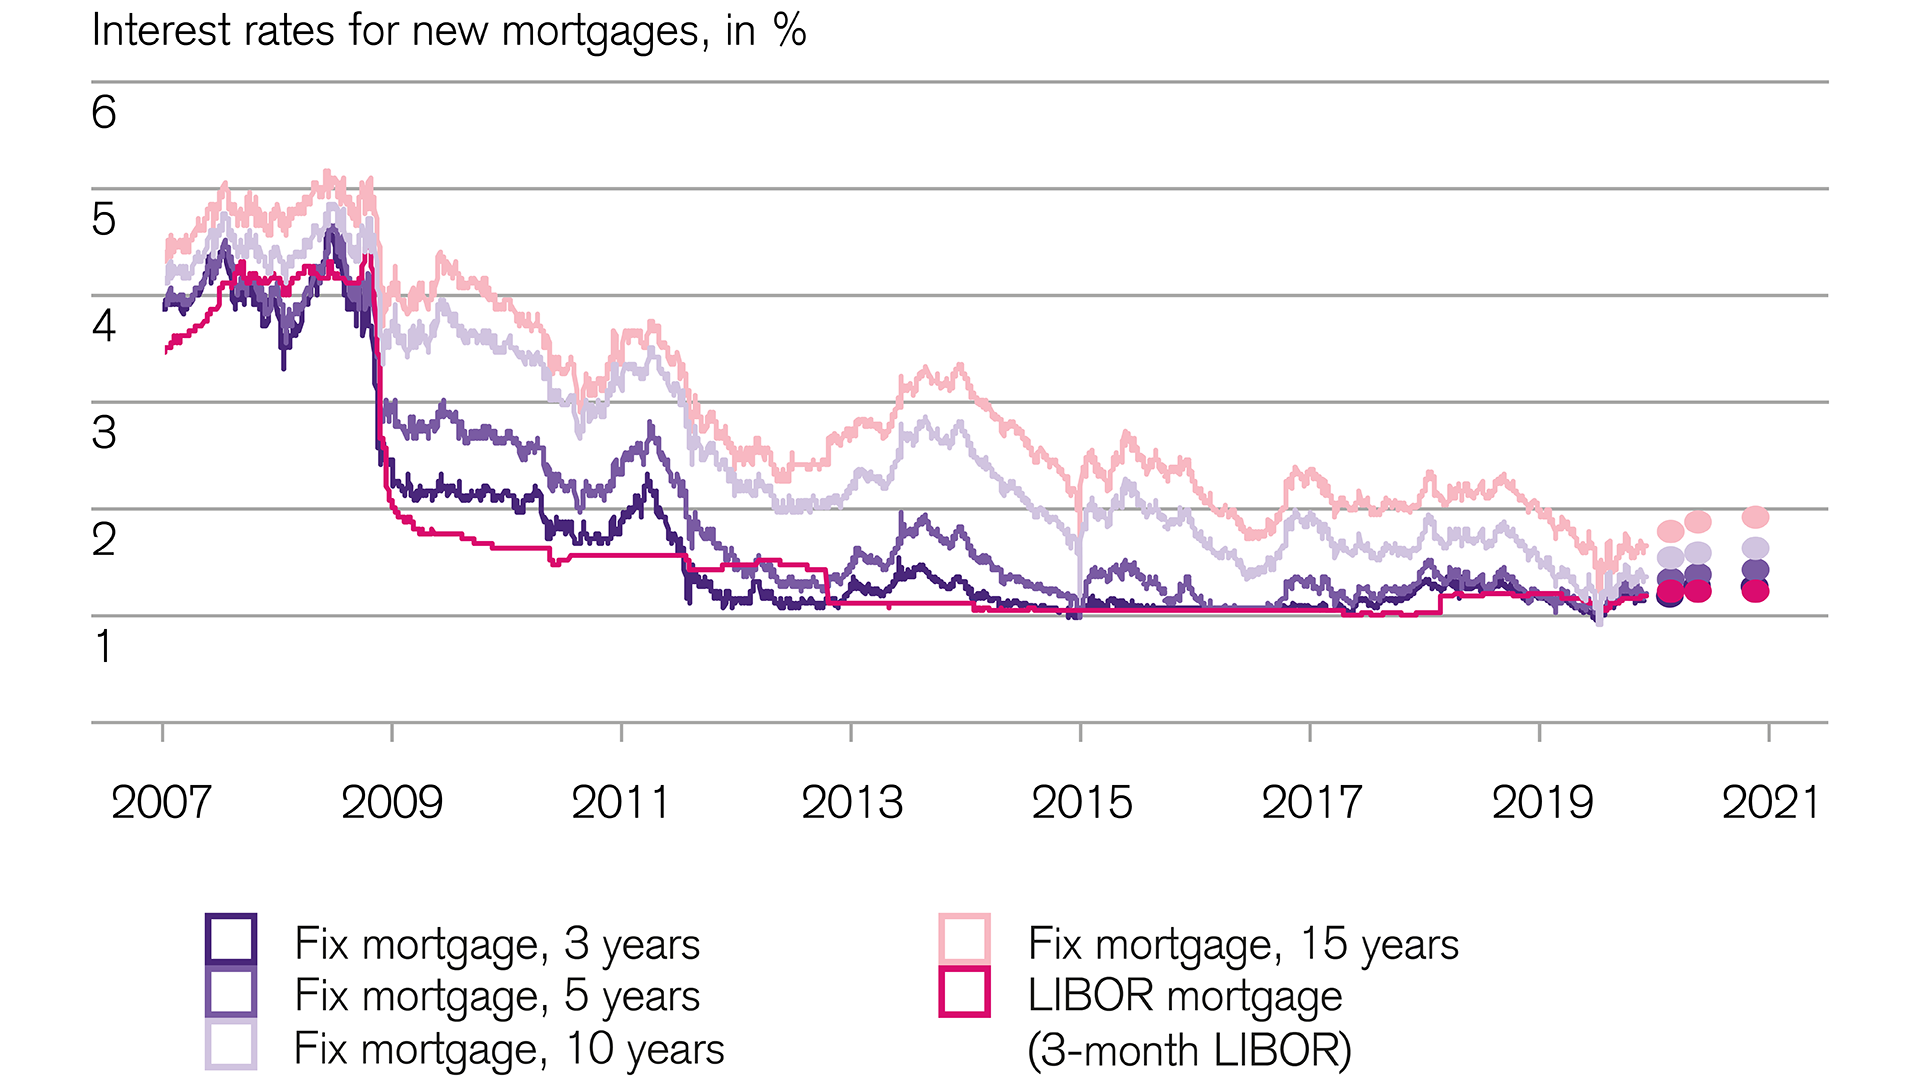 Financial markets mortgage interest rates in Switzerland remain low